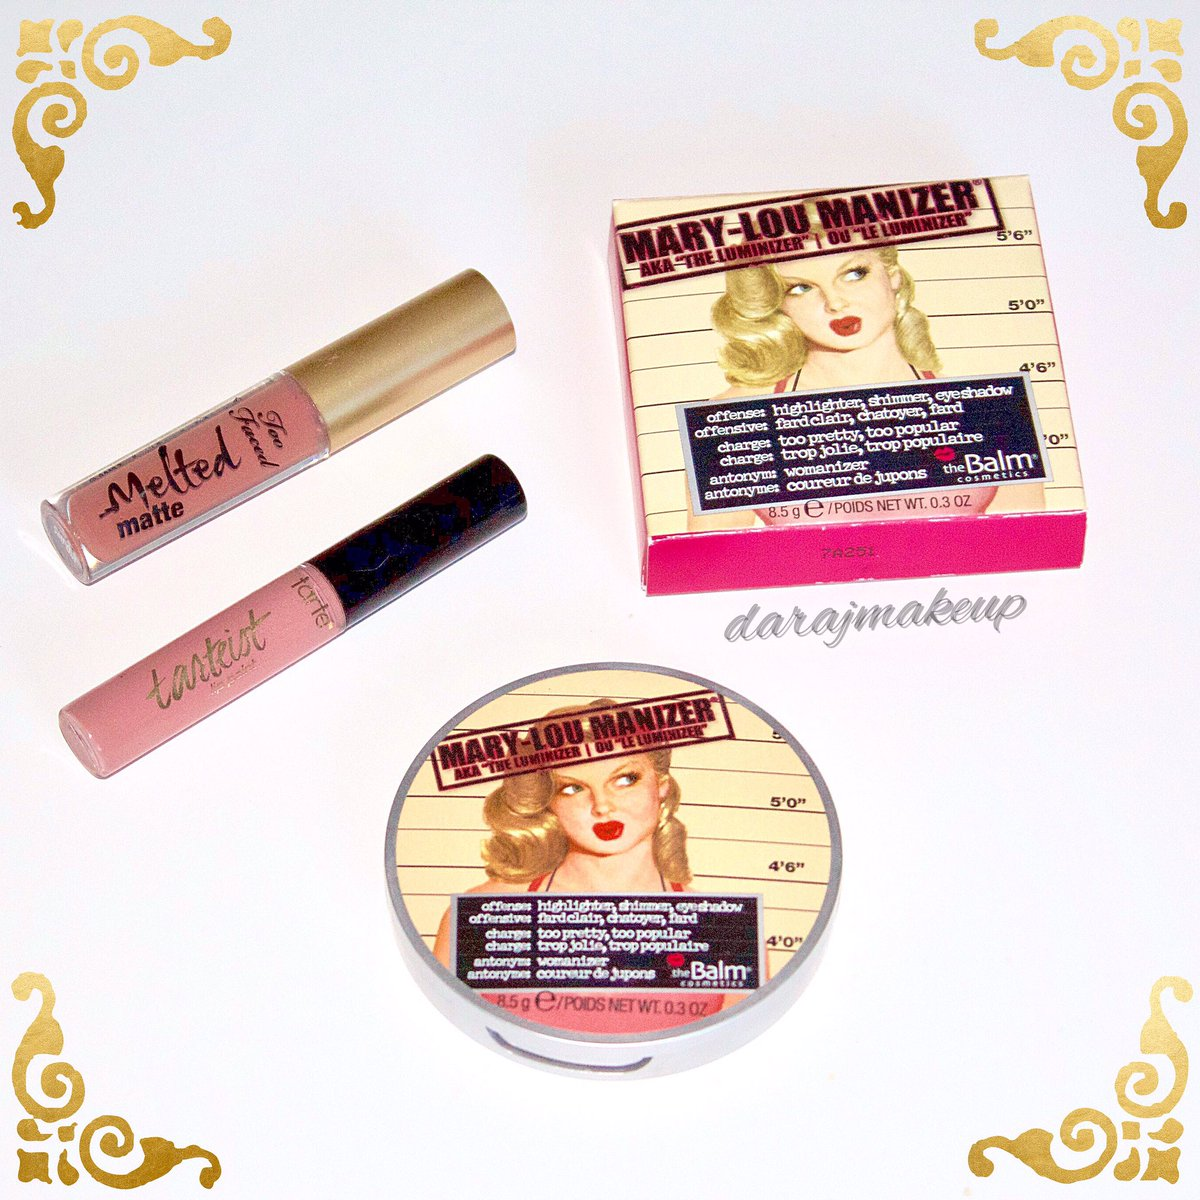 These products give me lifeeeee #makeupaddict #toofaced #tarte #thebalm #highlight #lipstick #danimansutti #youtube #darajmakeup<br>http://pic.twitter.com/4o1NaEkc9Z